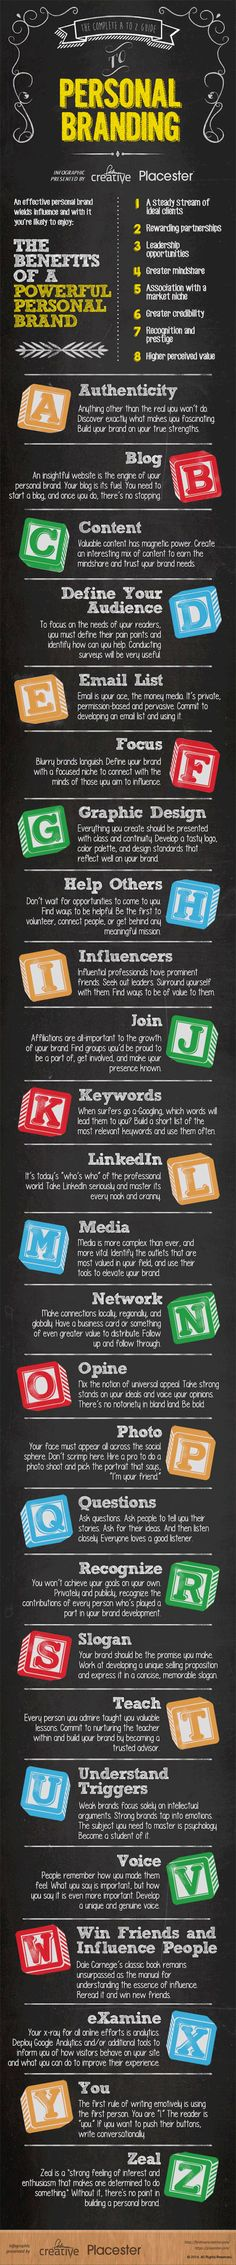 The Complete A To Z Guide To Personal Branding #infographic